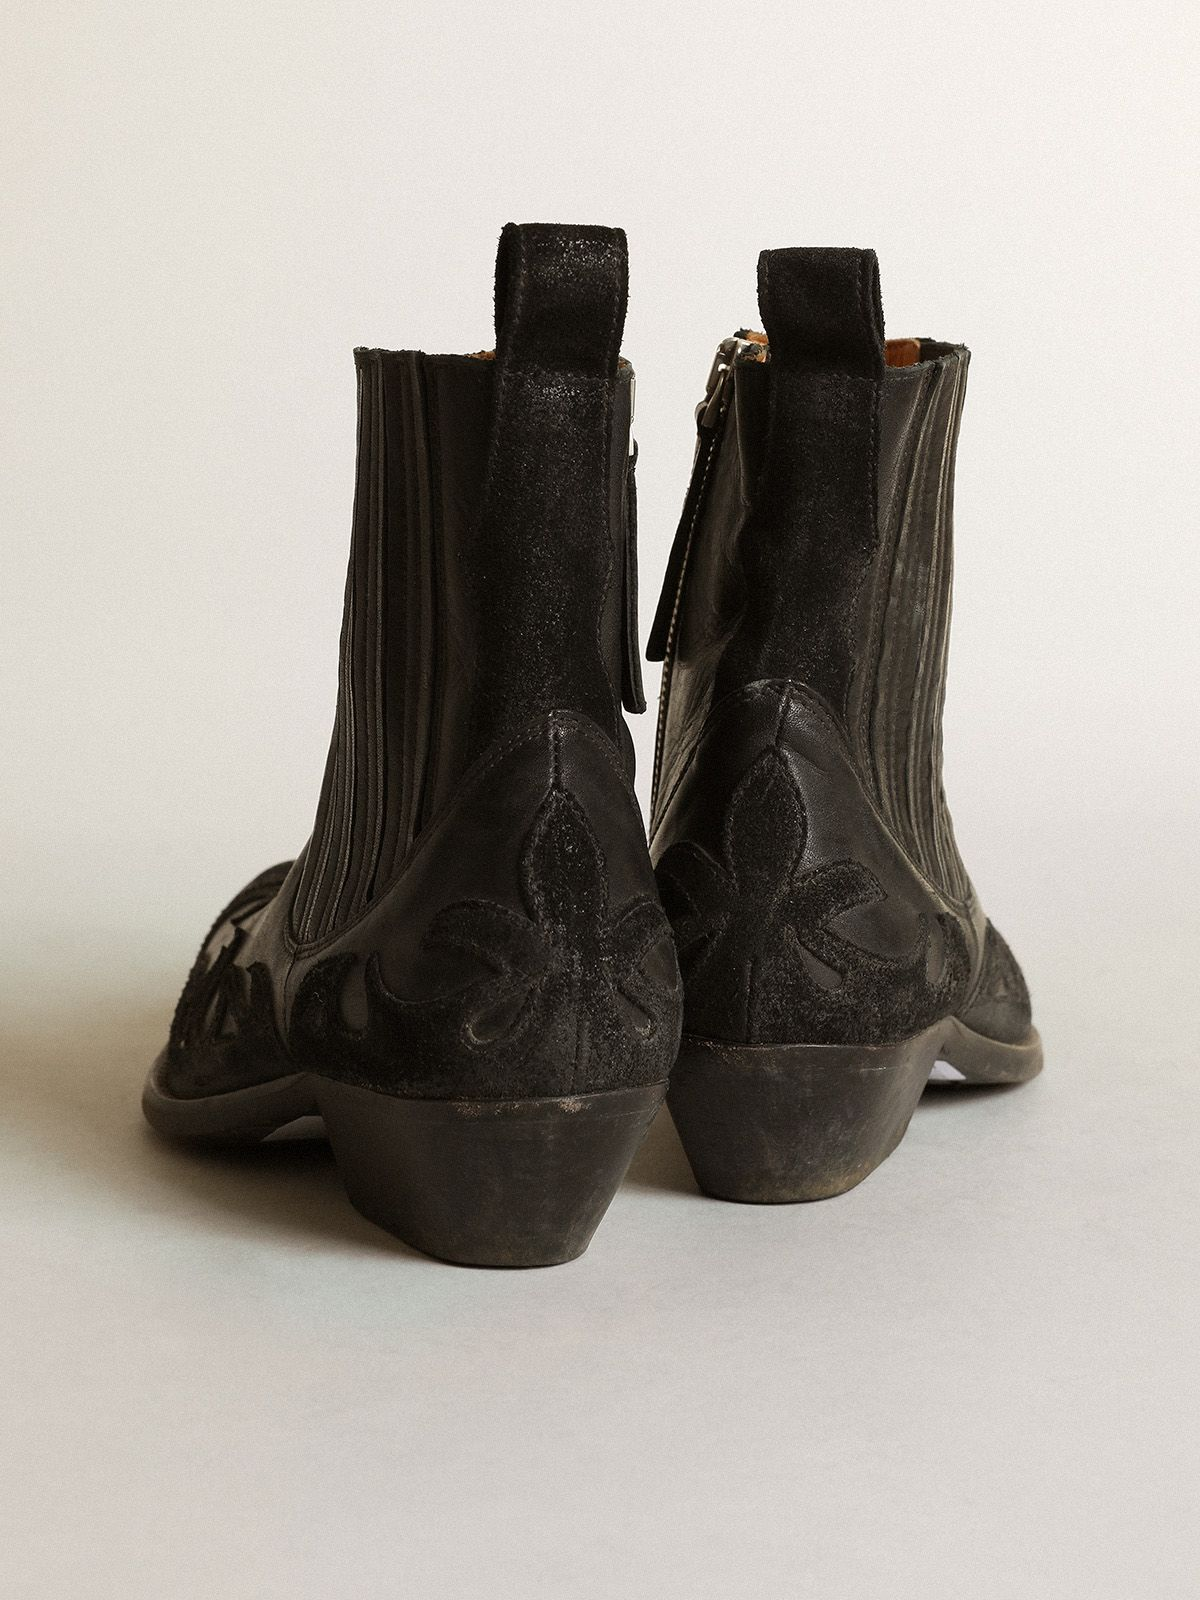 Golden Goose - Santiago black leather ankle boots with suede details in